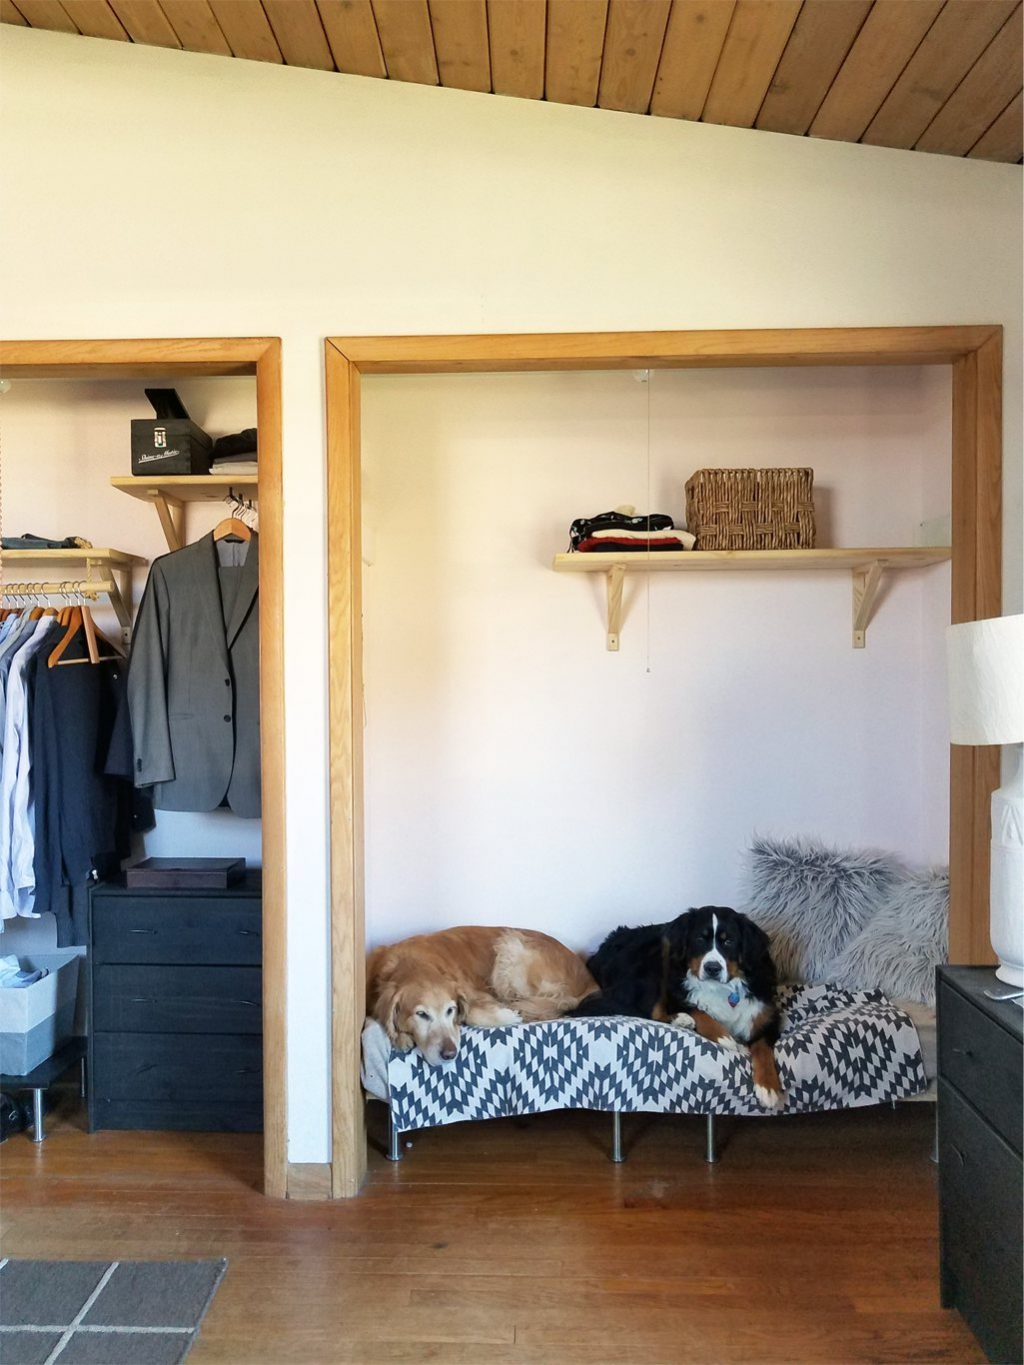 Diy Raised Dog Bed From Mdf And Inexpensive Legs From Ikea